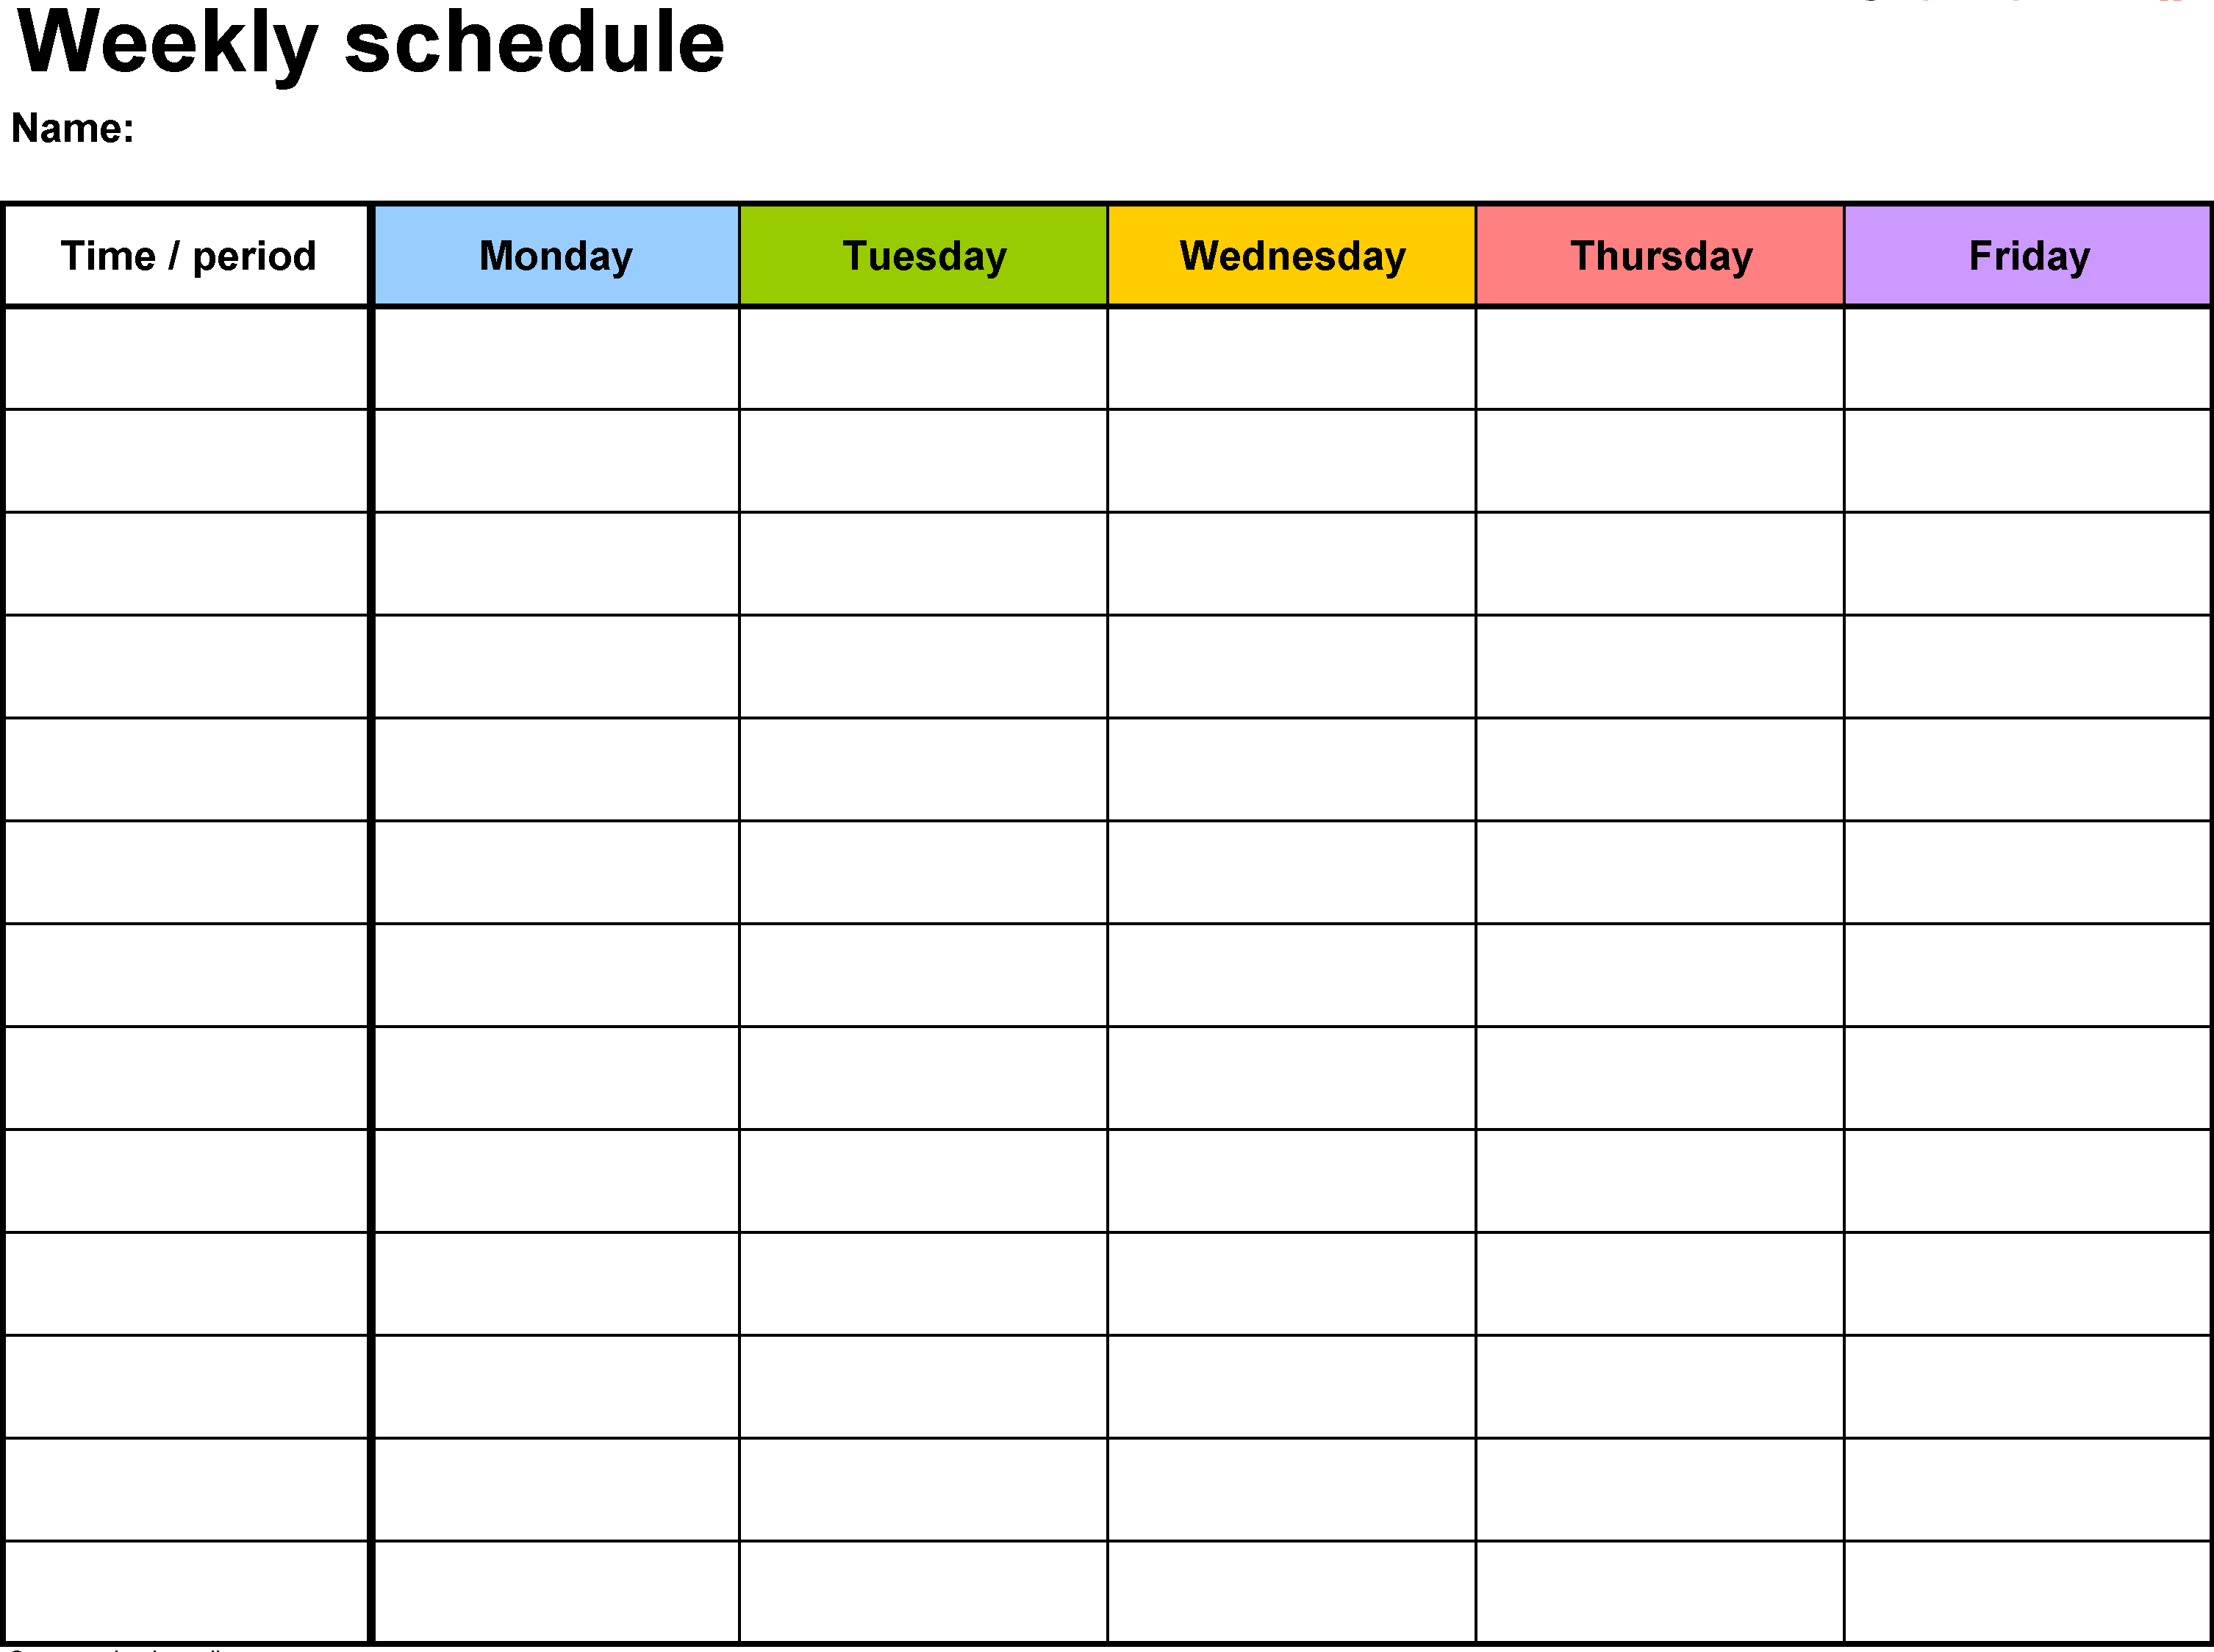 Weekly Calendar Template | Weekly Calendar Template - Word, Excel intended for Planning Calendar Template Excel